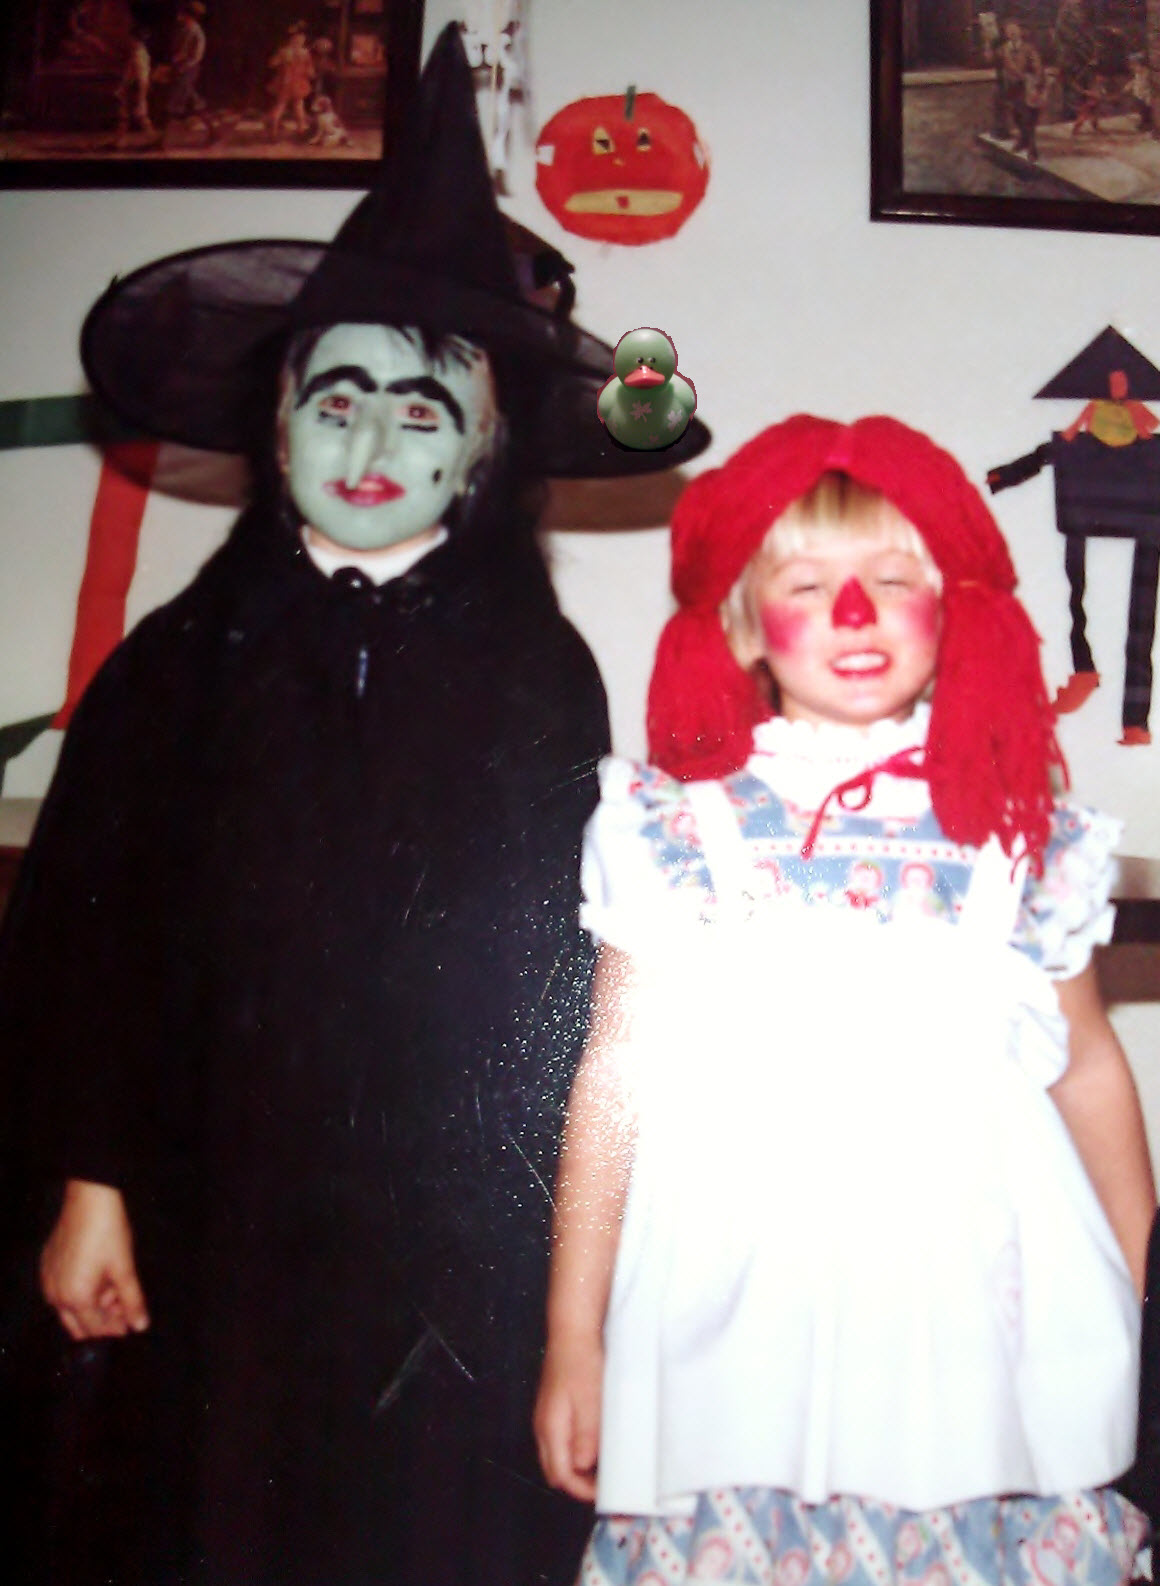 A flashback: My Halloween costumes when I was a kid in the 80's ...